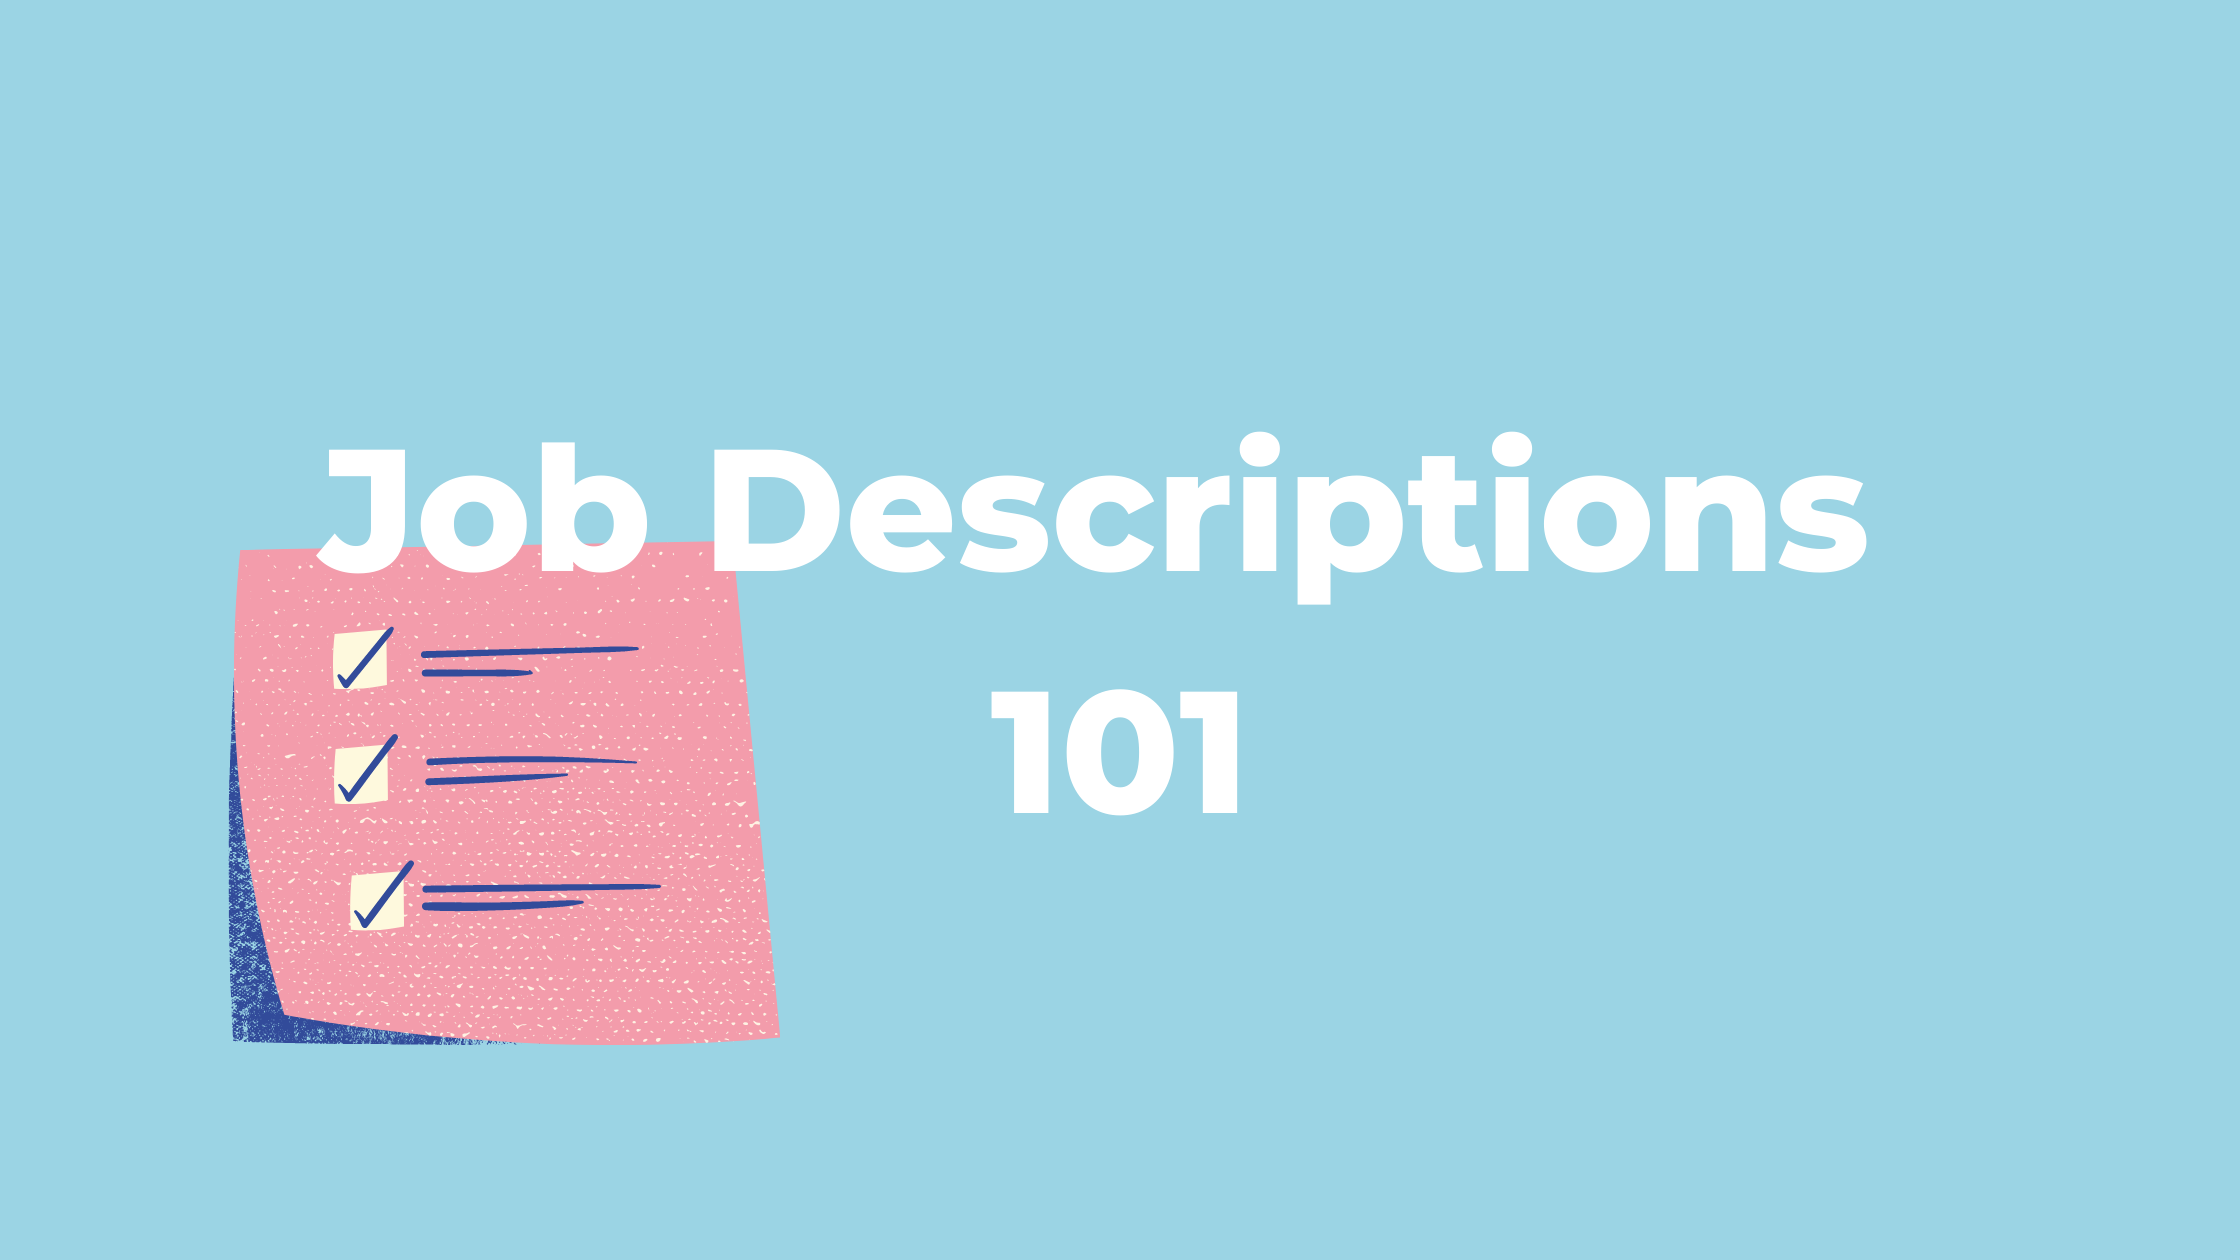 How to Write a Job Description that Brings in the Right Candidates